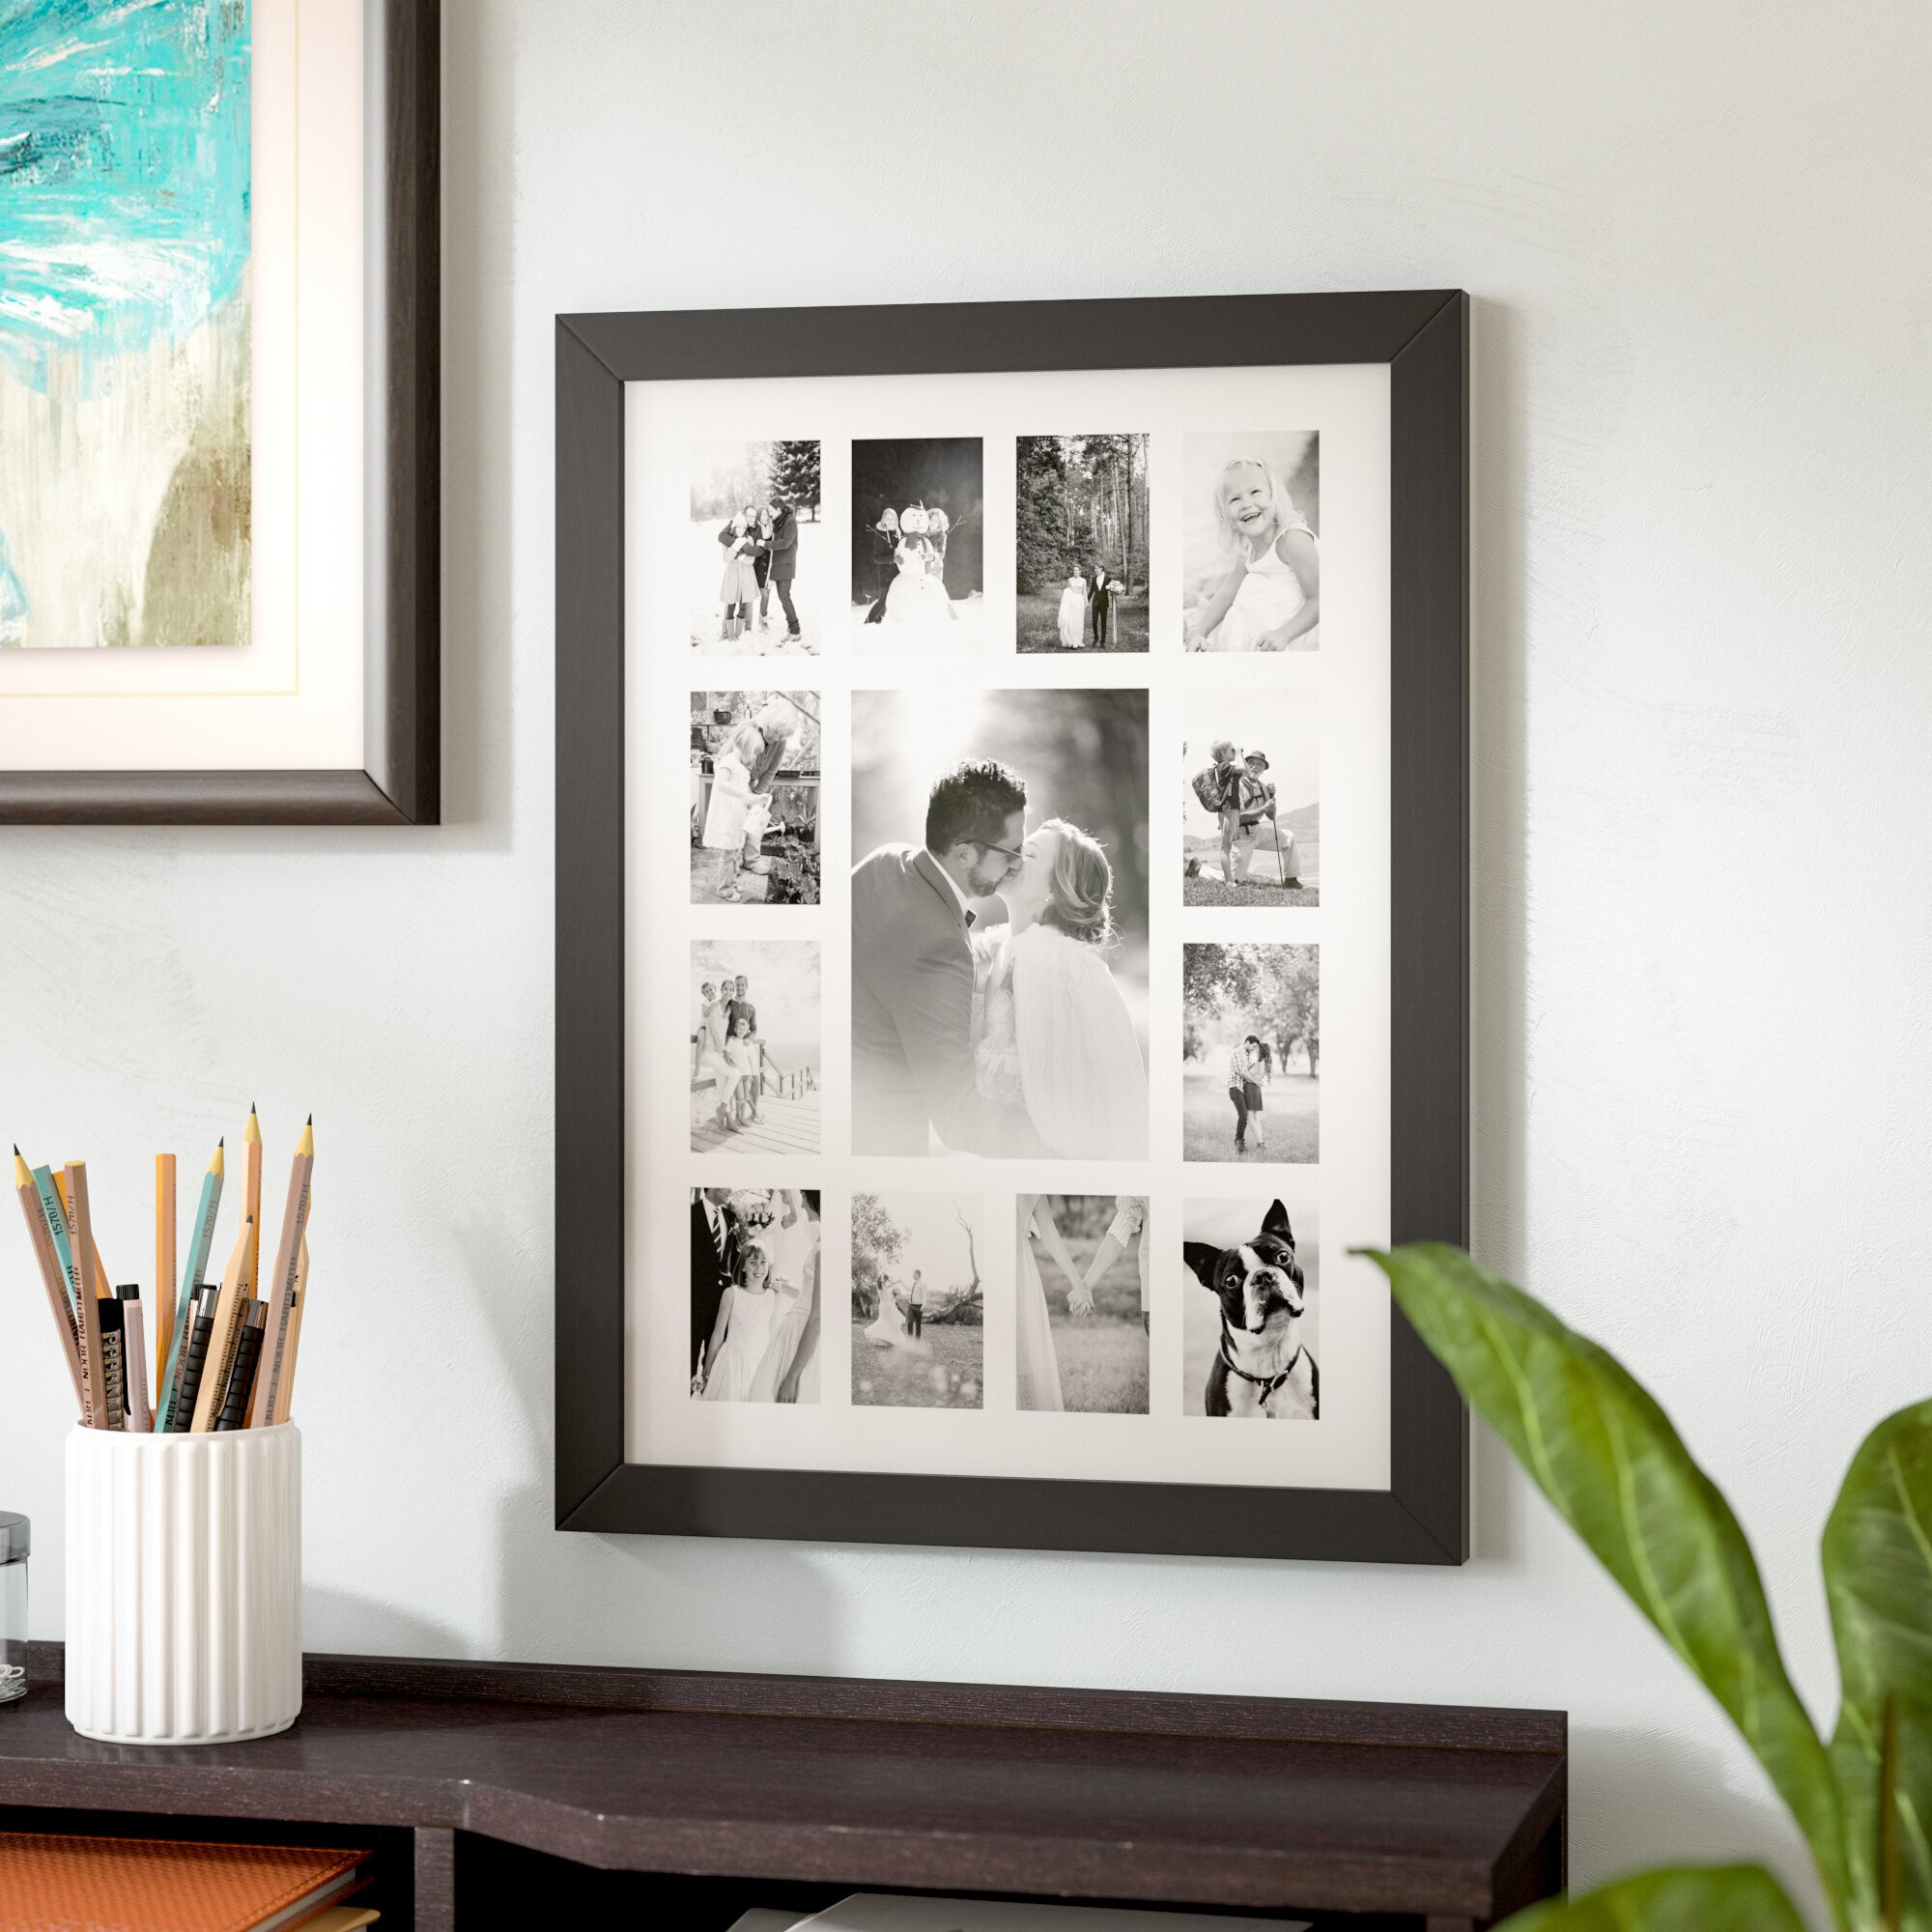 How To Choose A Collage Picture Frame